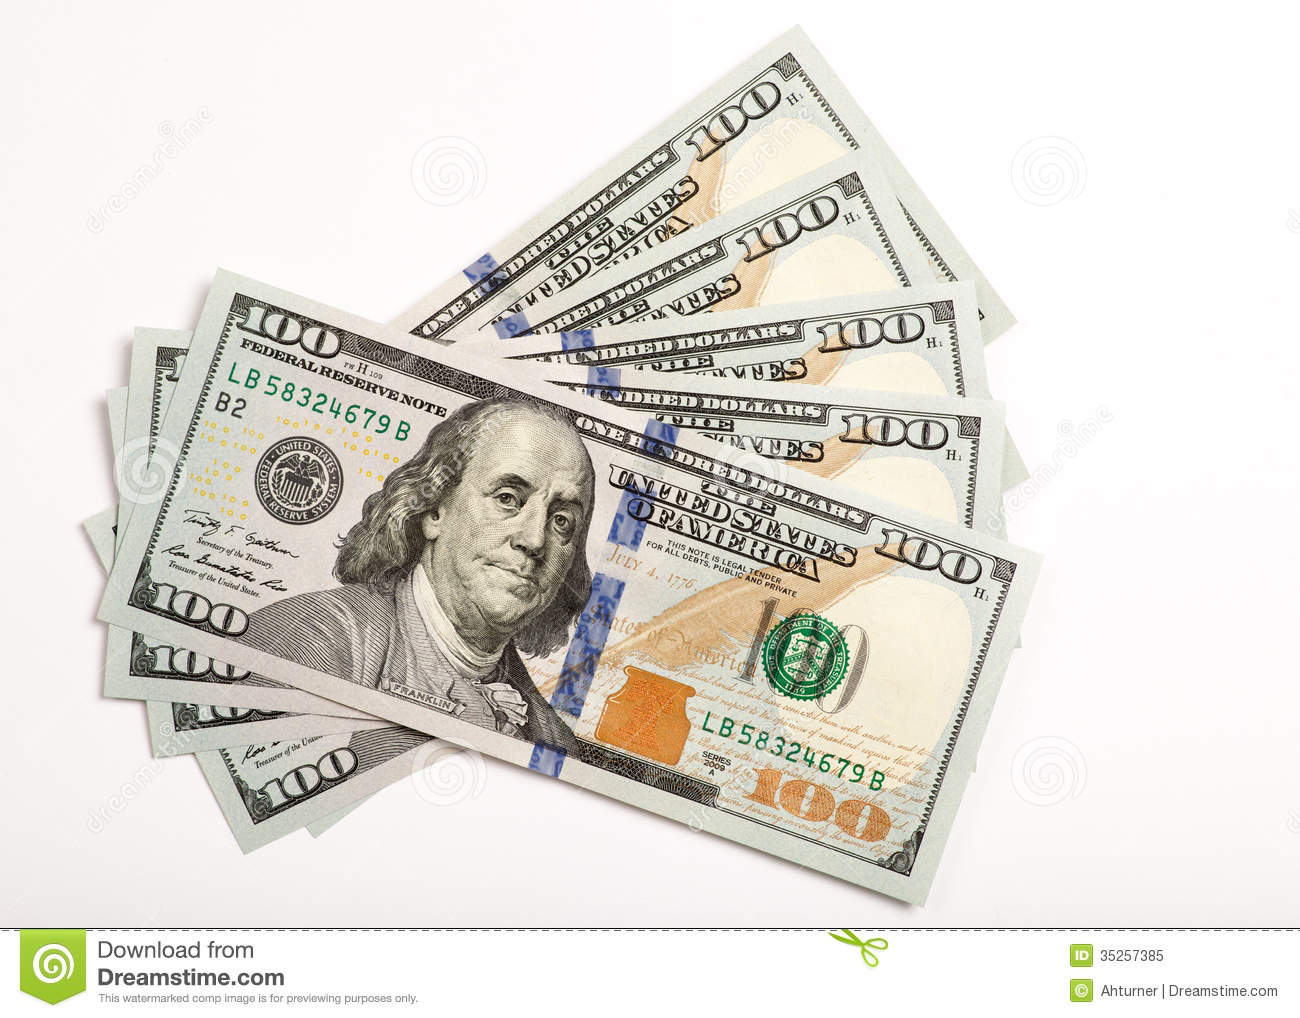 888 Dollar Bill free clipart.